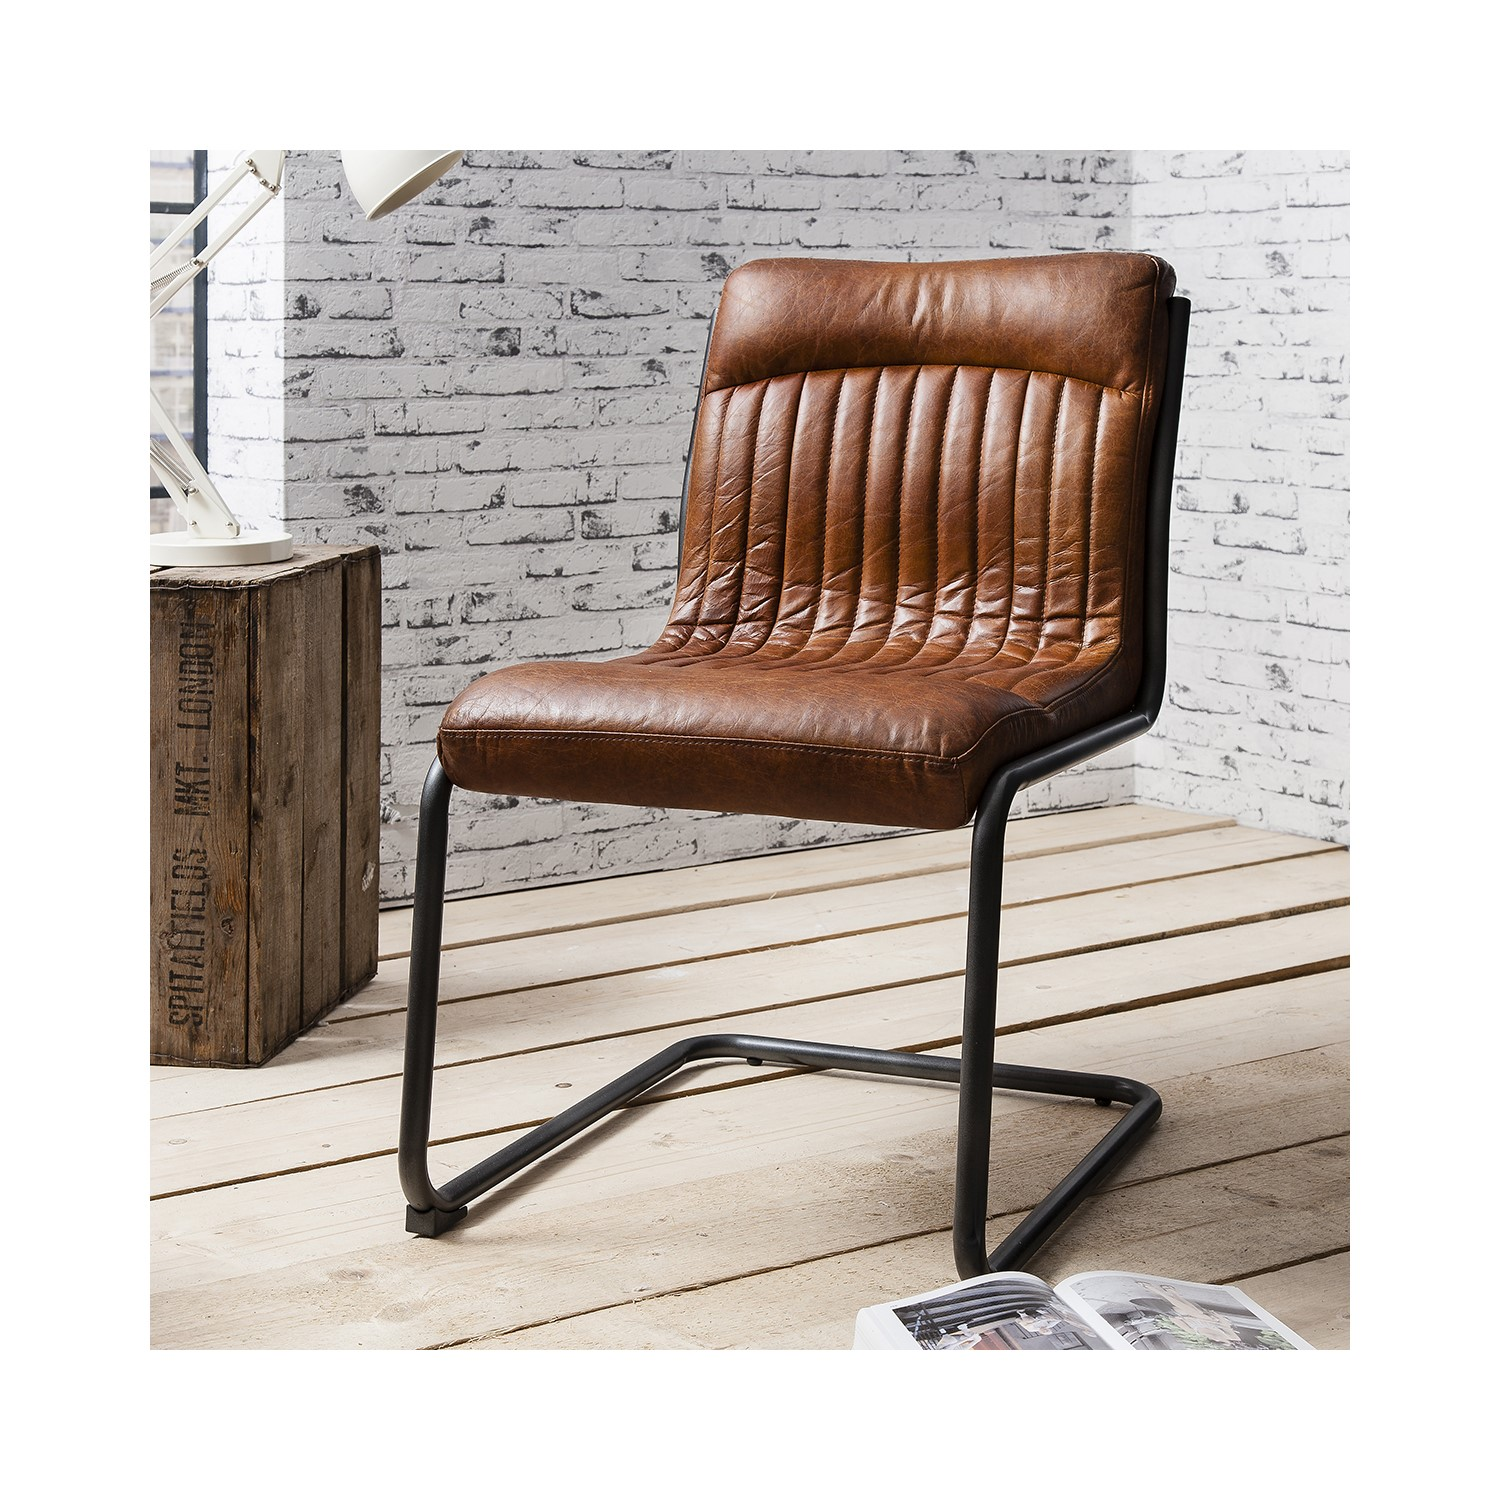 225 & Capri Leather Chair - Industrial Dining Chair in Antique Tan